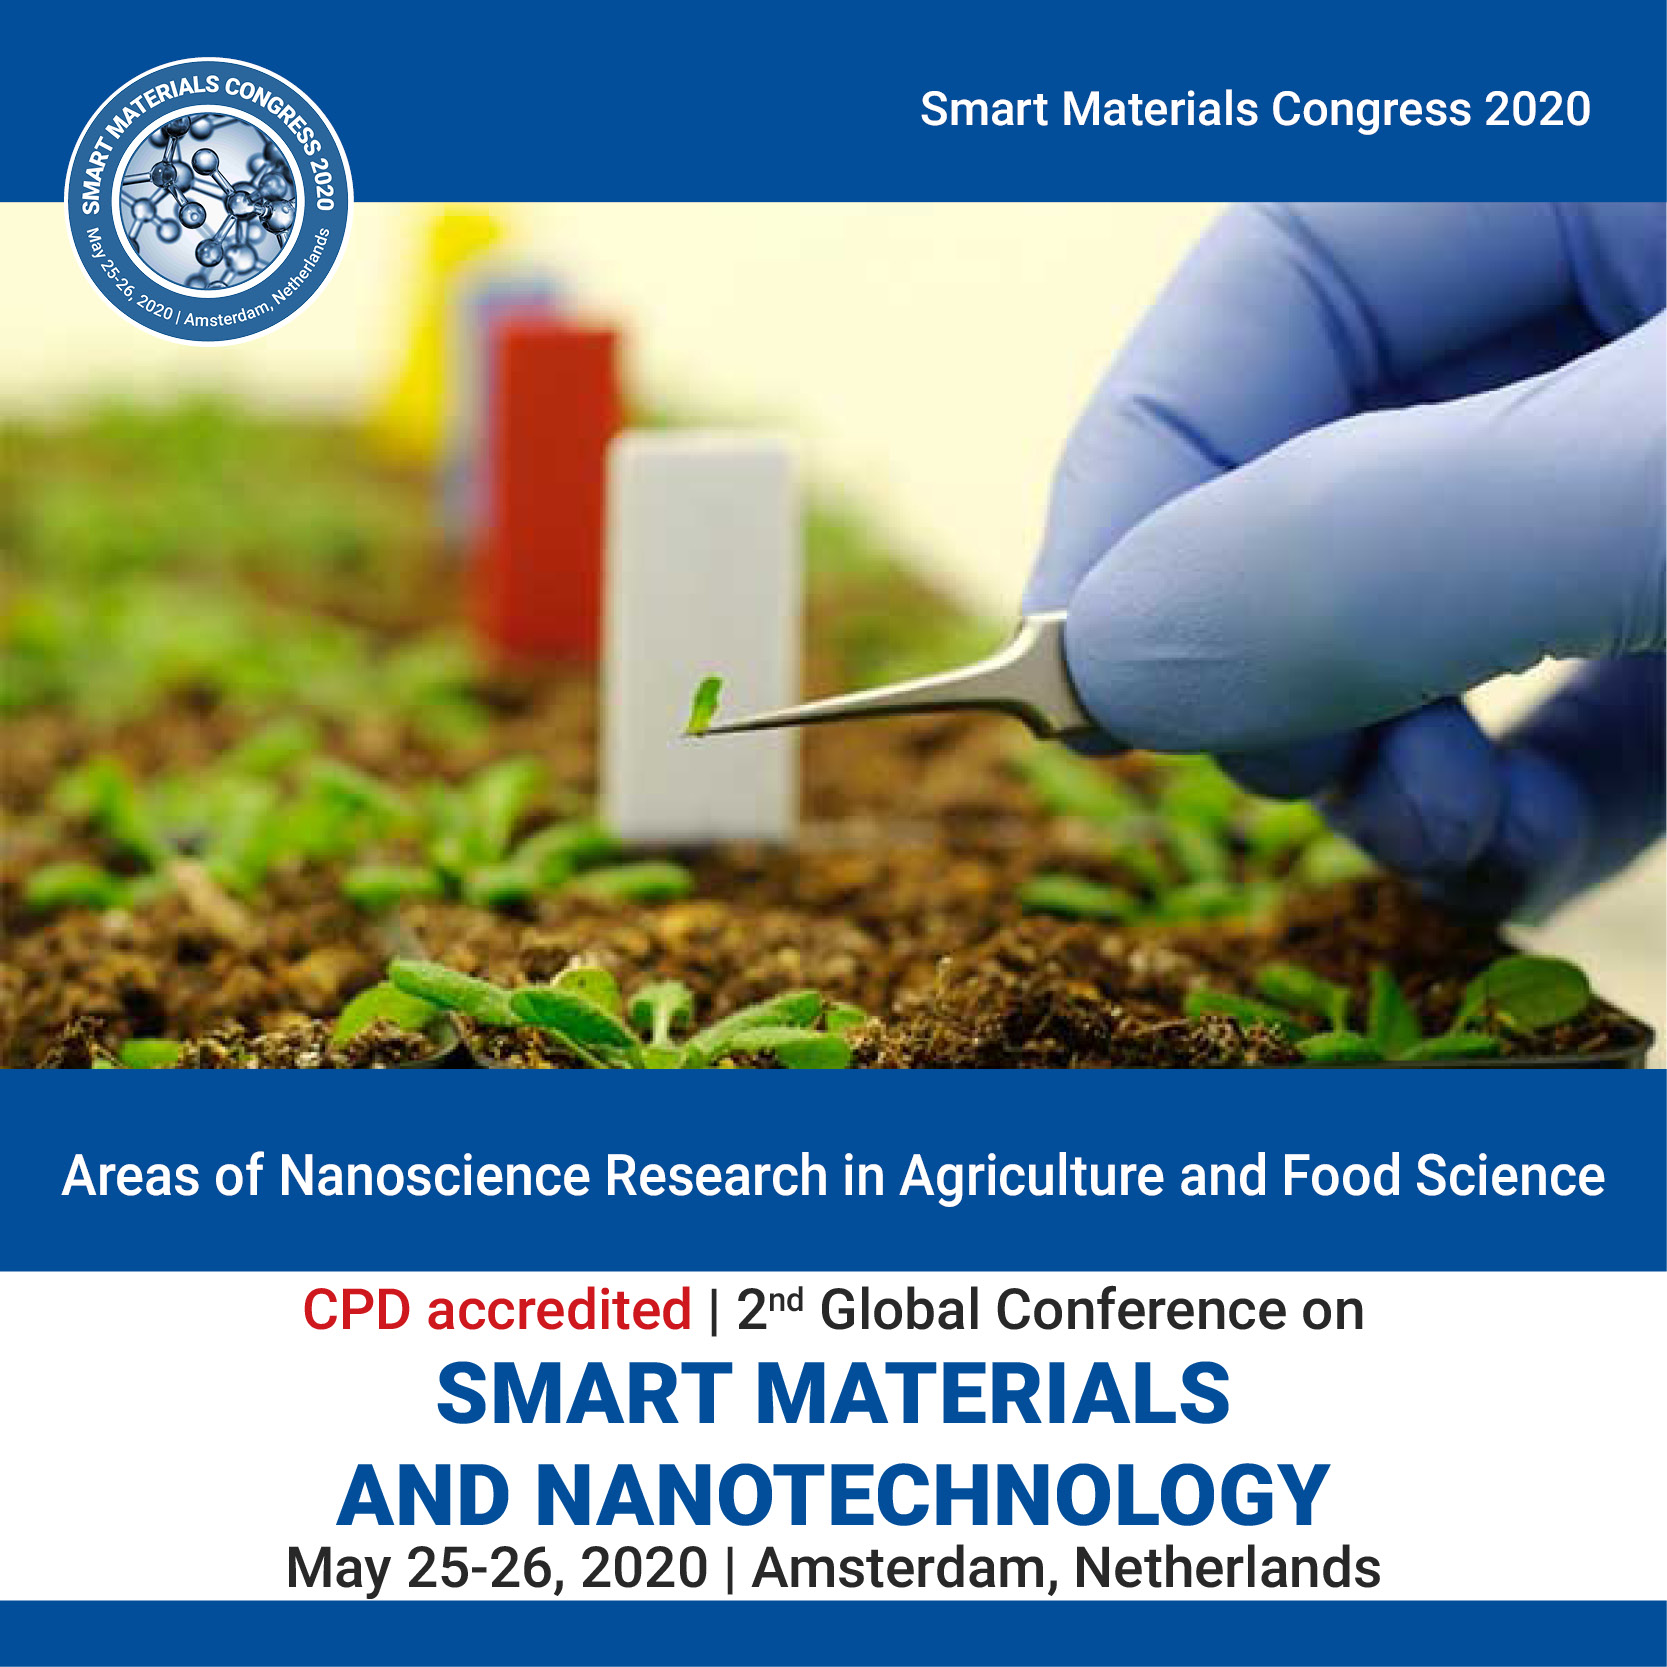 Areas of Nanoscience Research in Agriculture and Food Science Photo